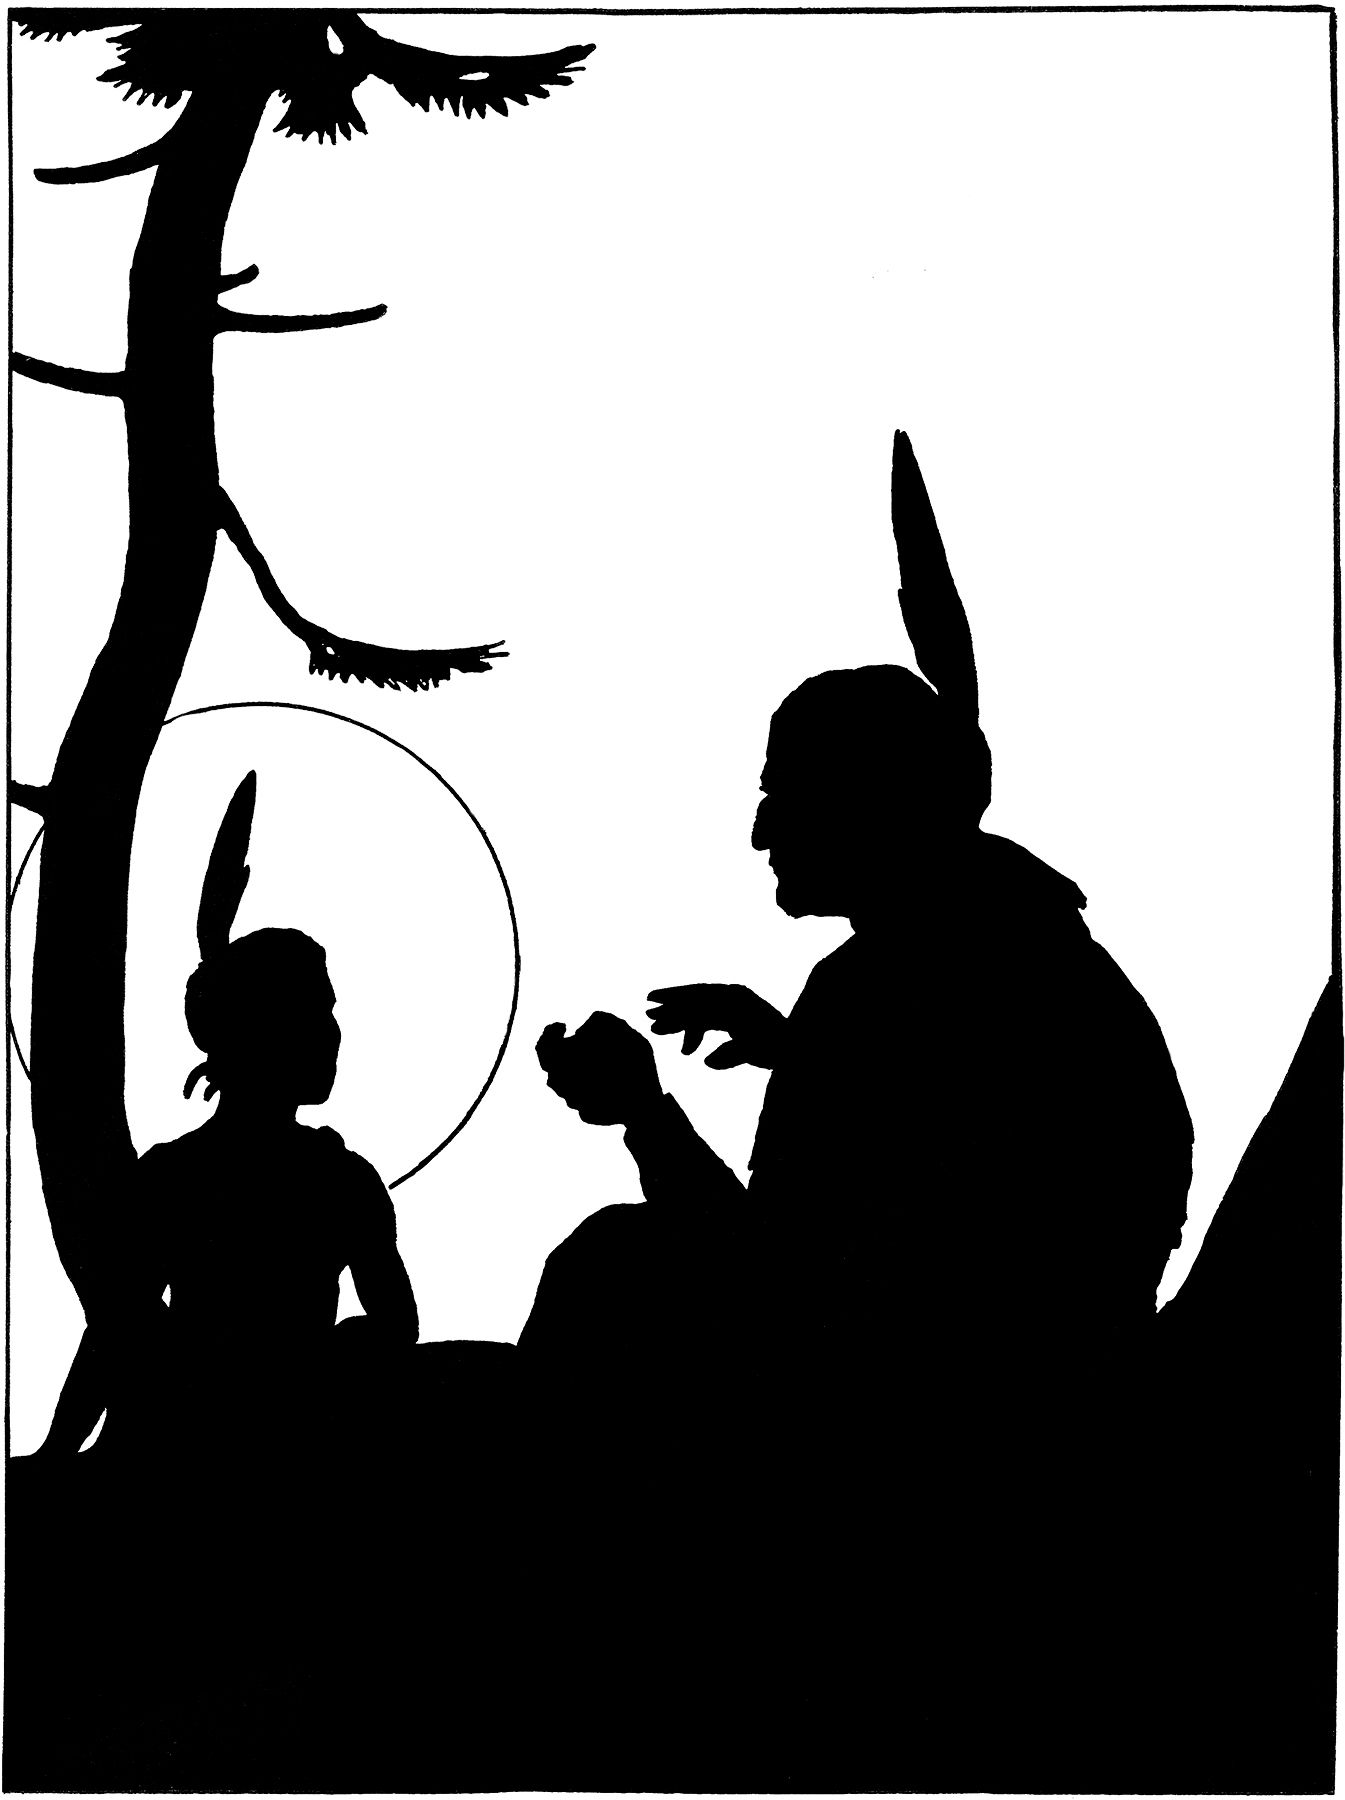 Vintage Native Americans Image - Silhouette   Native american ...